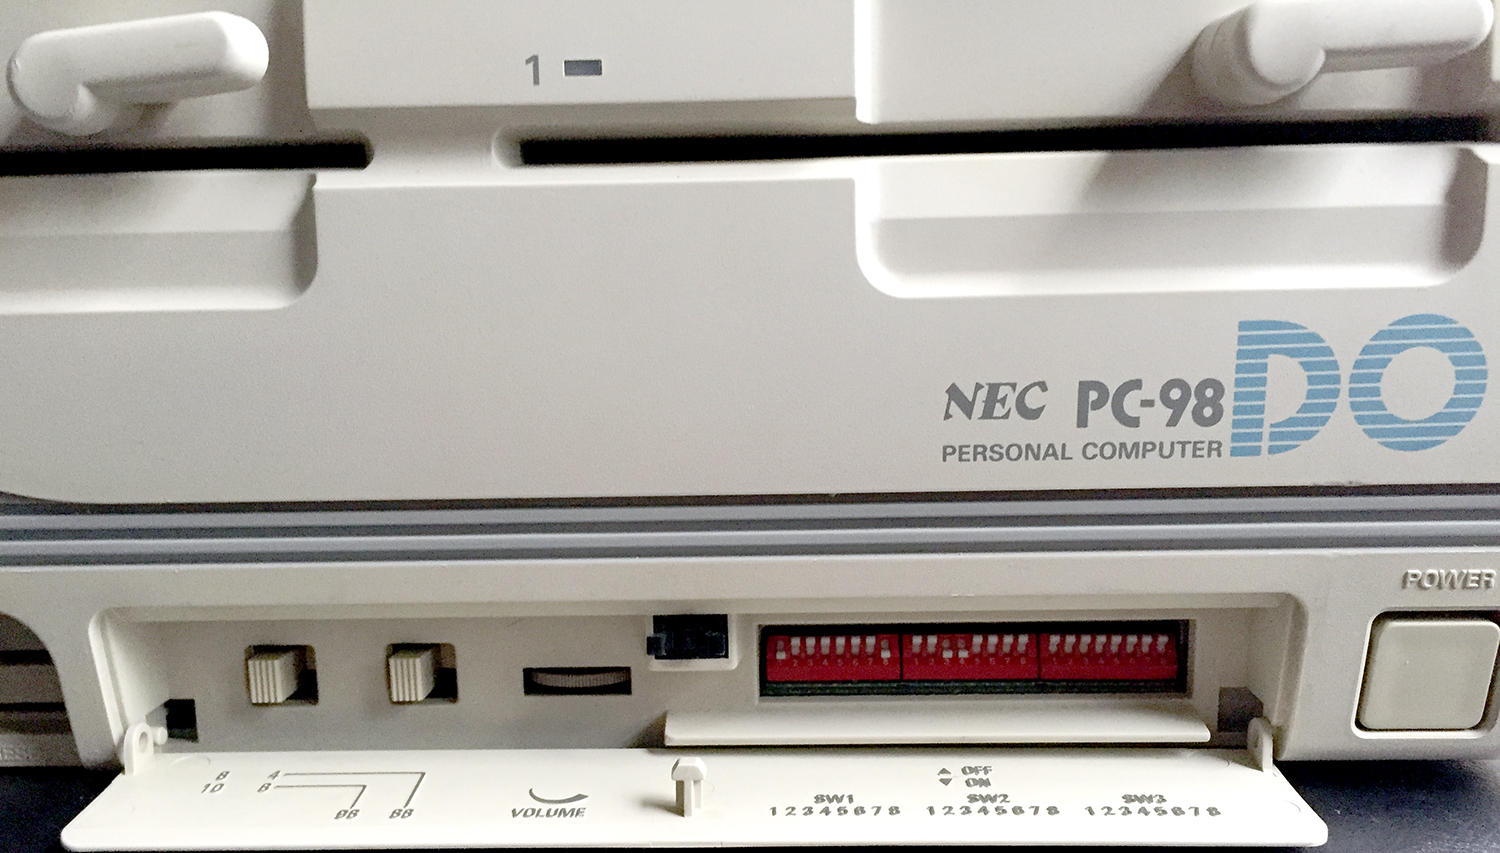 Pc98 hdi PC98 Images